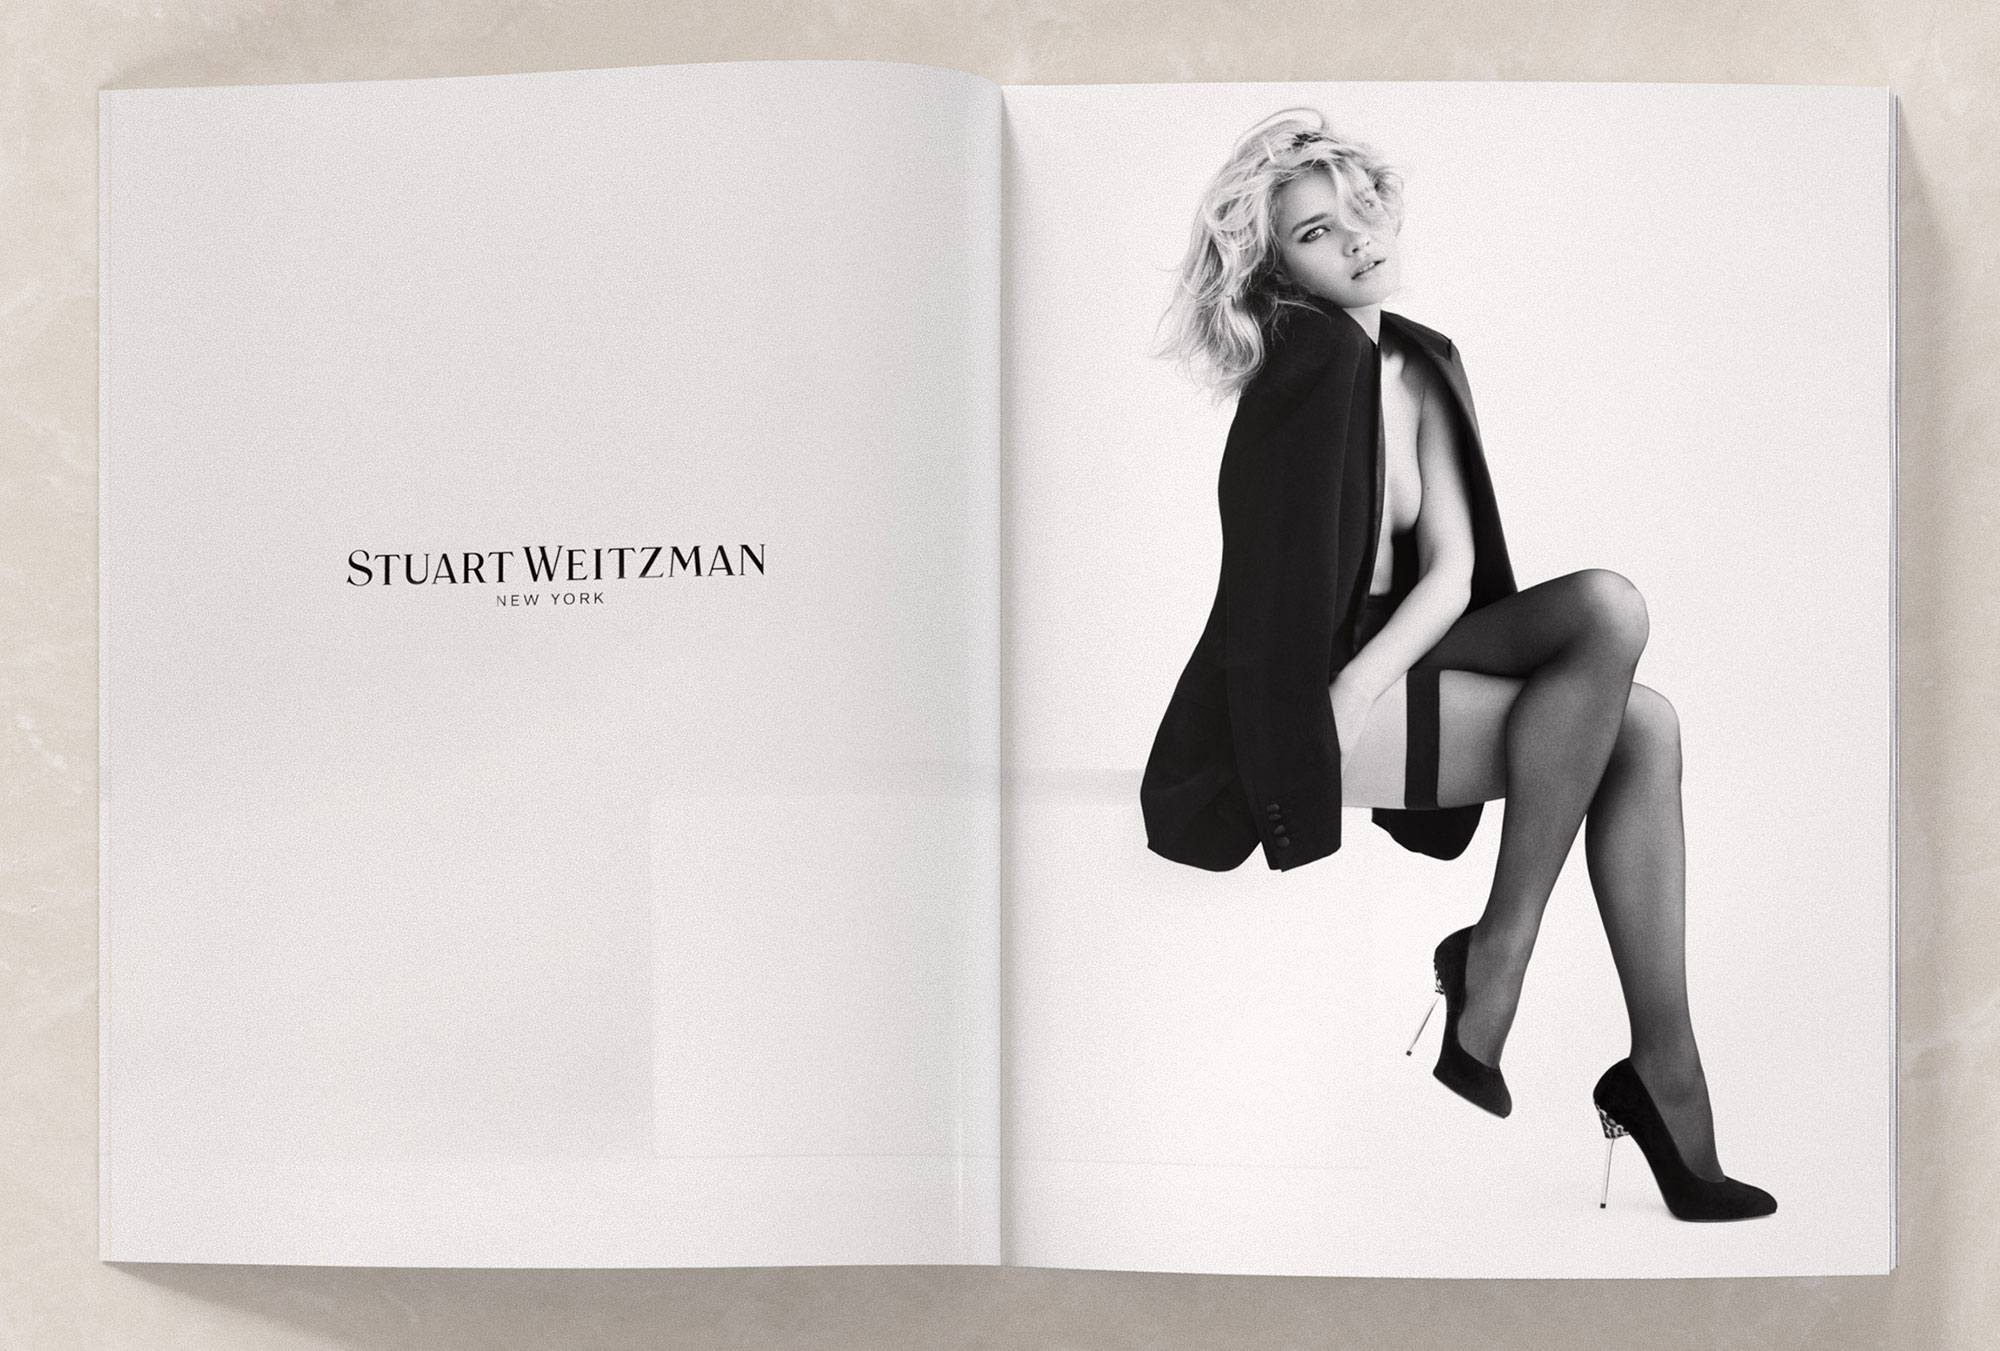 Art Direction of model Natalia Vodianova for Shoe Brand Stuart Weitzman